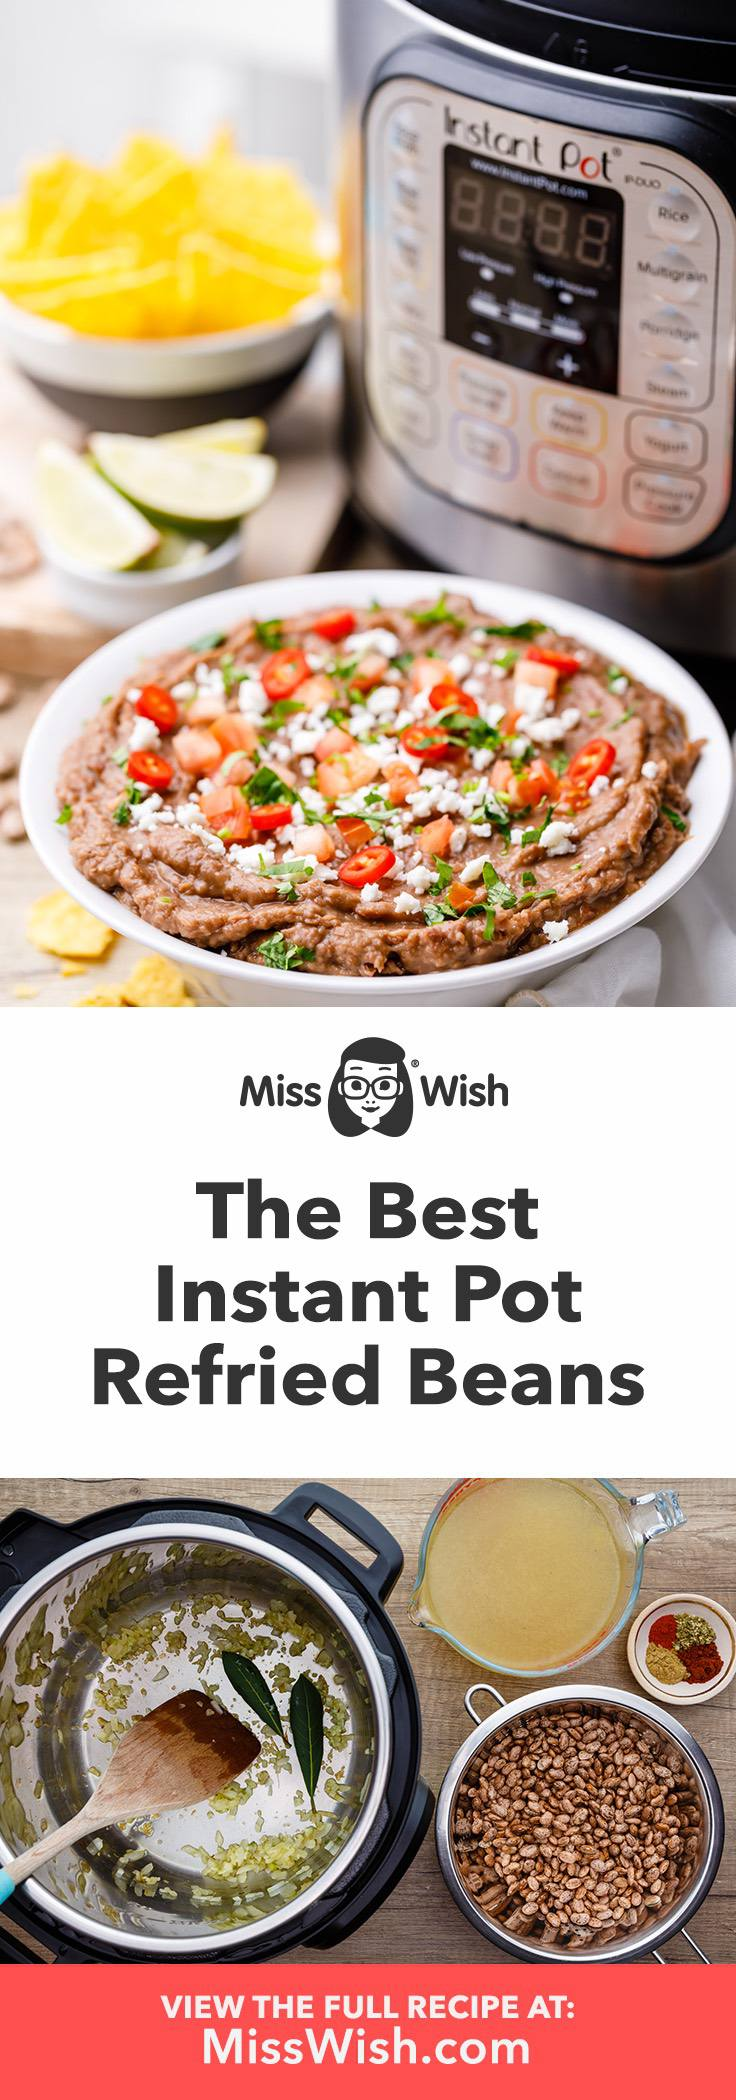 How to Make The Best No Soak Instant Pot Refried Beans